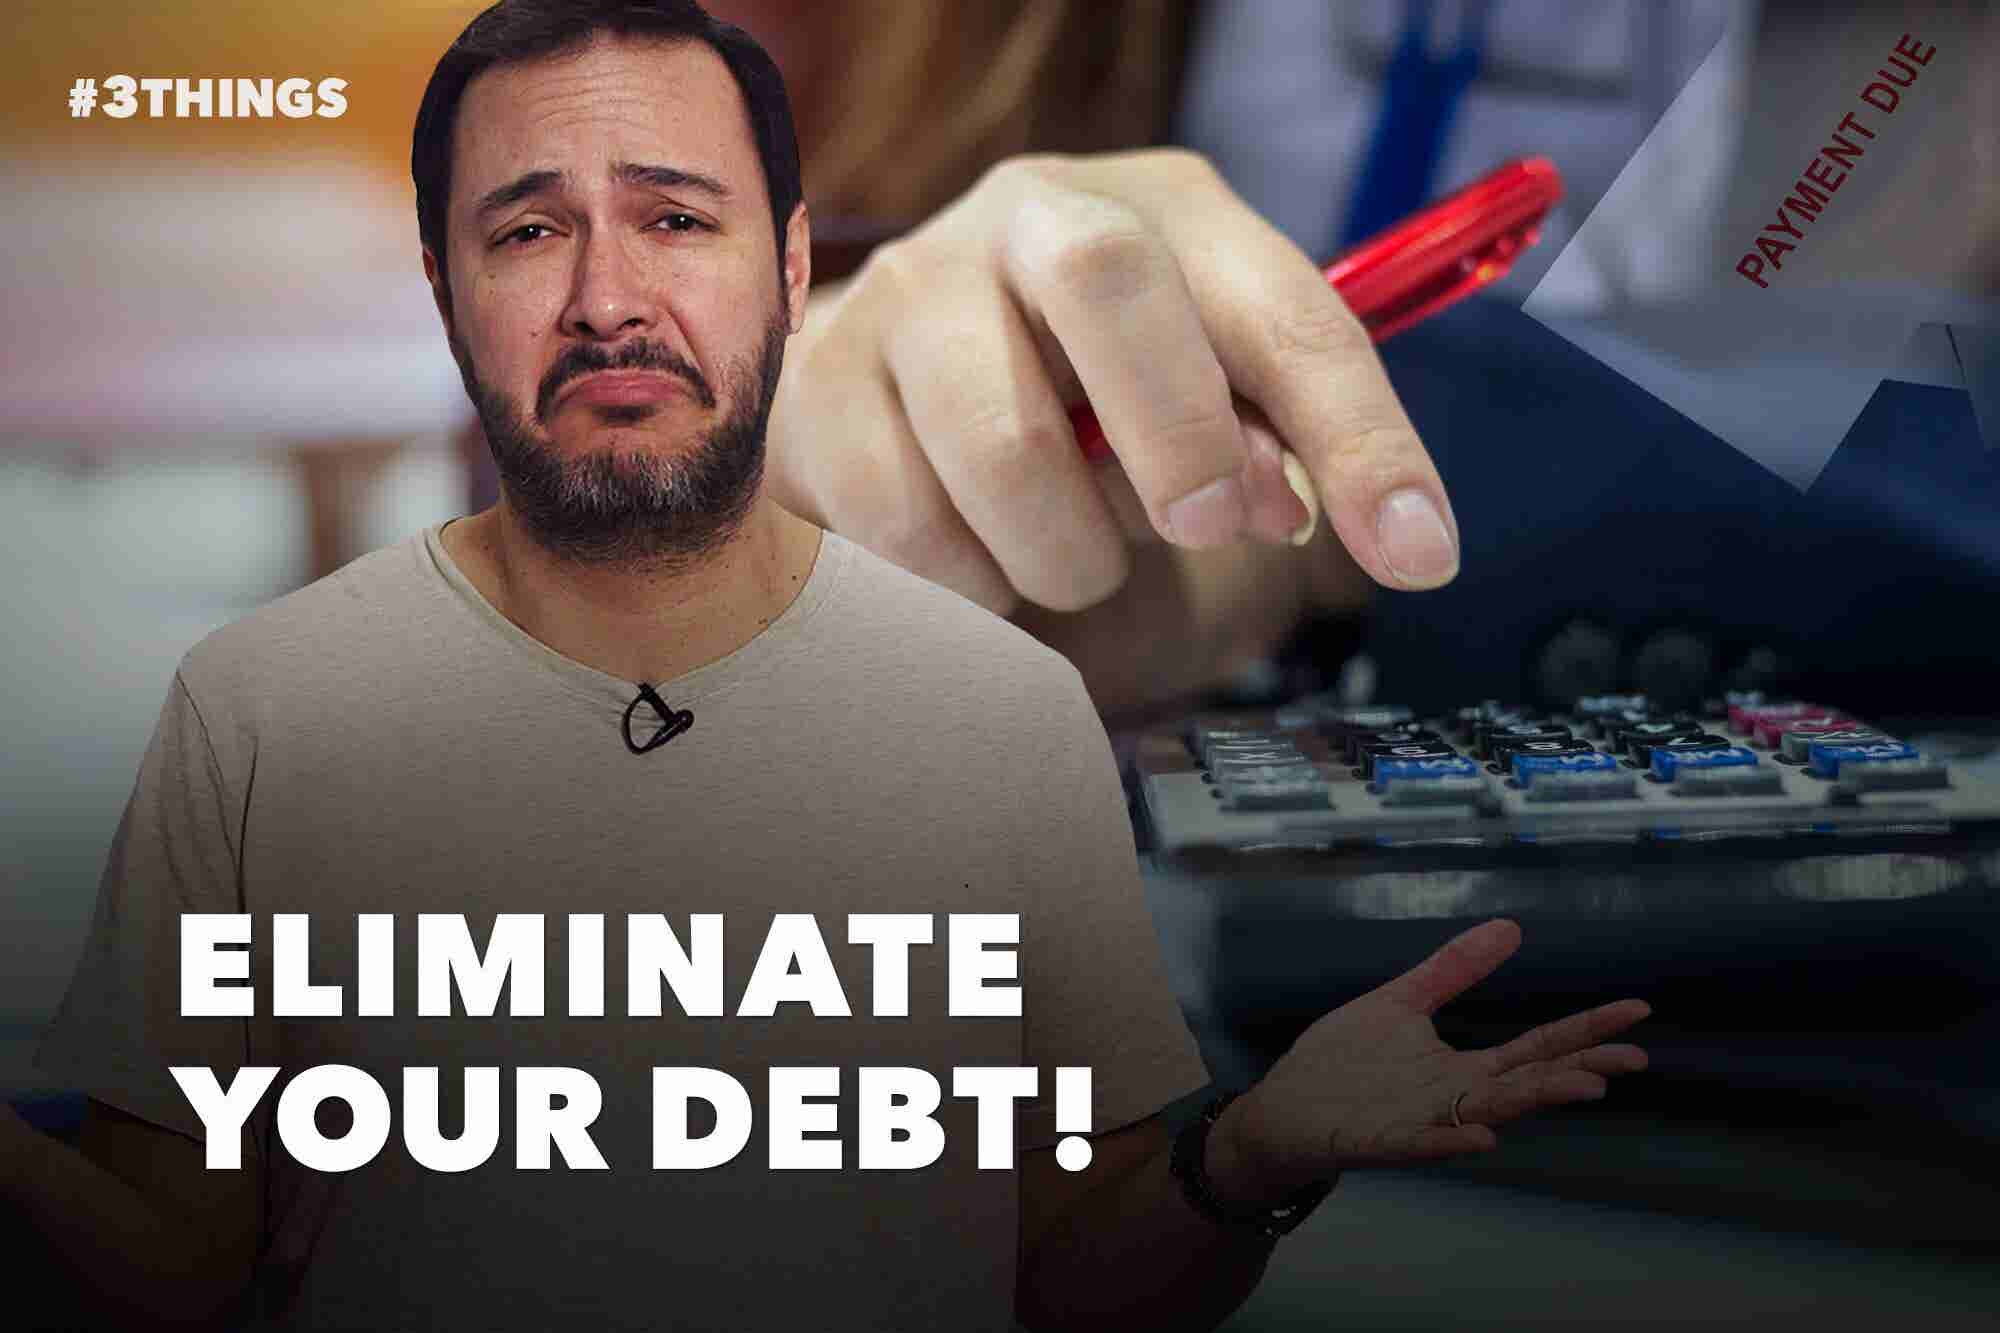 3 Tips for Dealing With Debt as an Entrepreneur (60-Second Video)